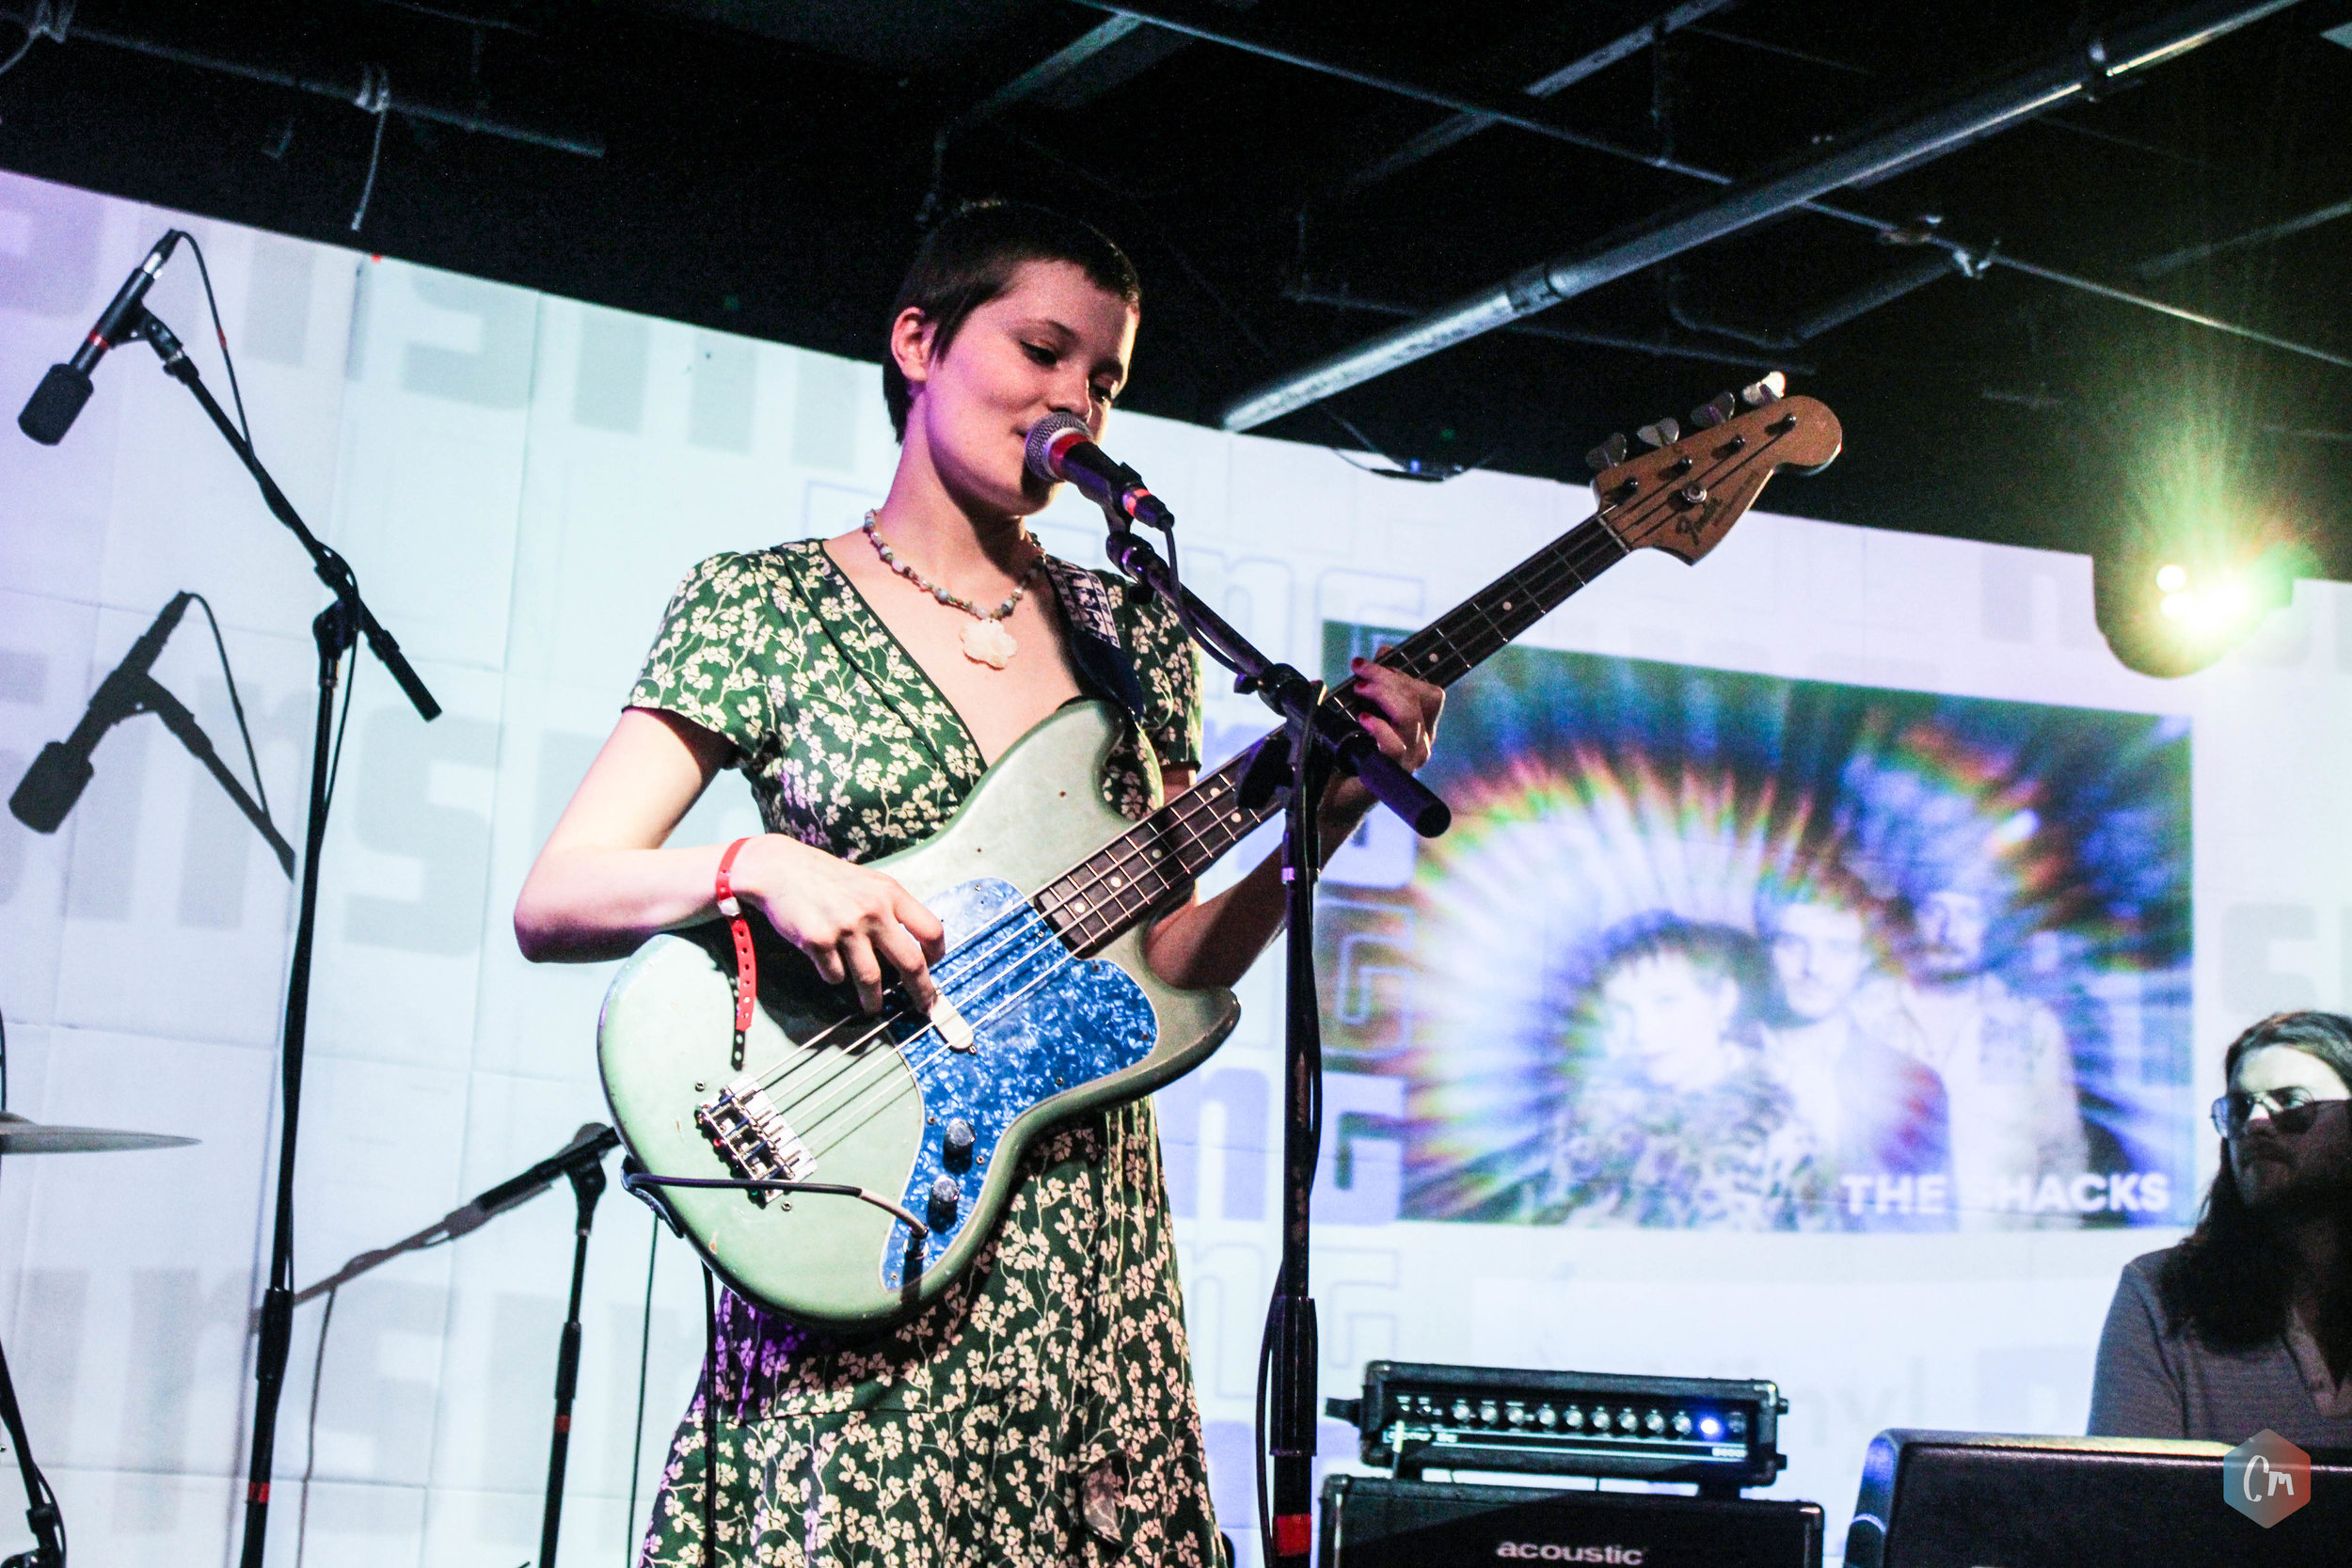 The Shacks at SXSW - Photo © Concentus Music - Reproduction without permission not permitted